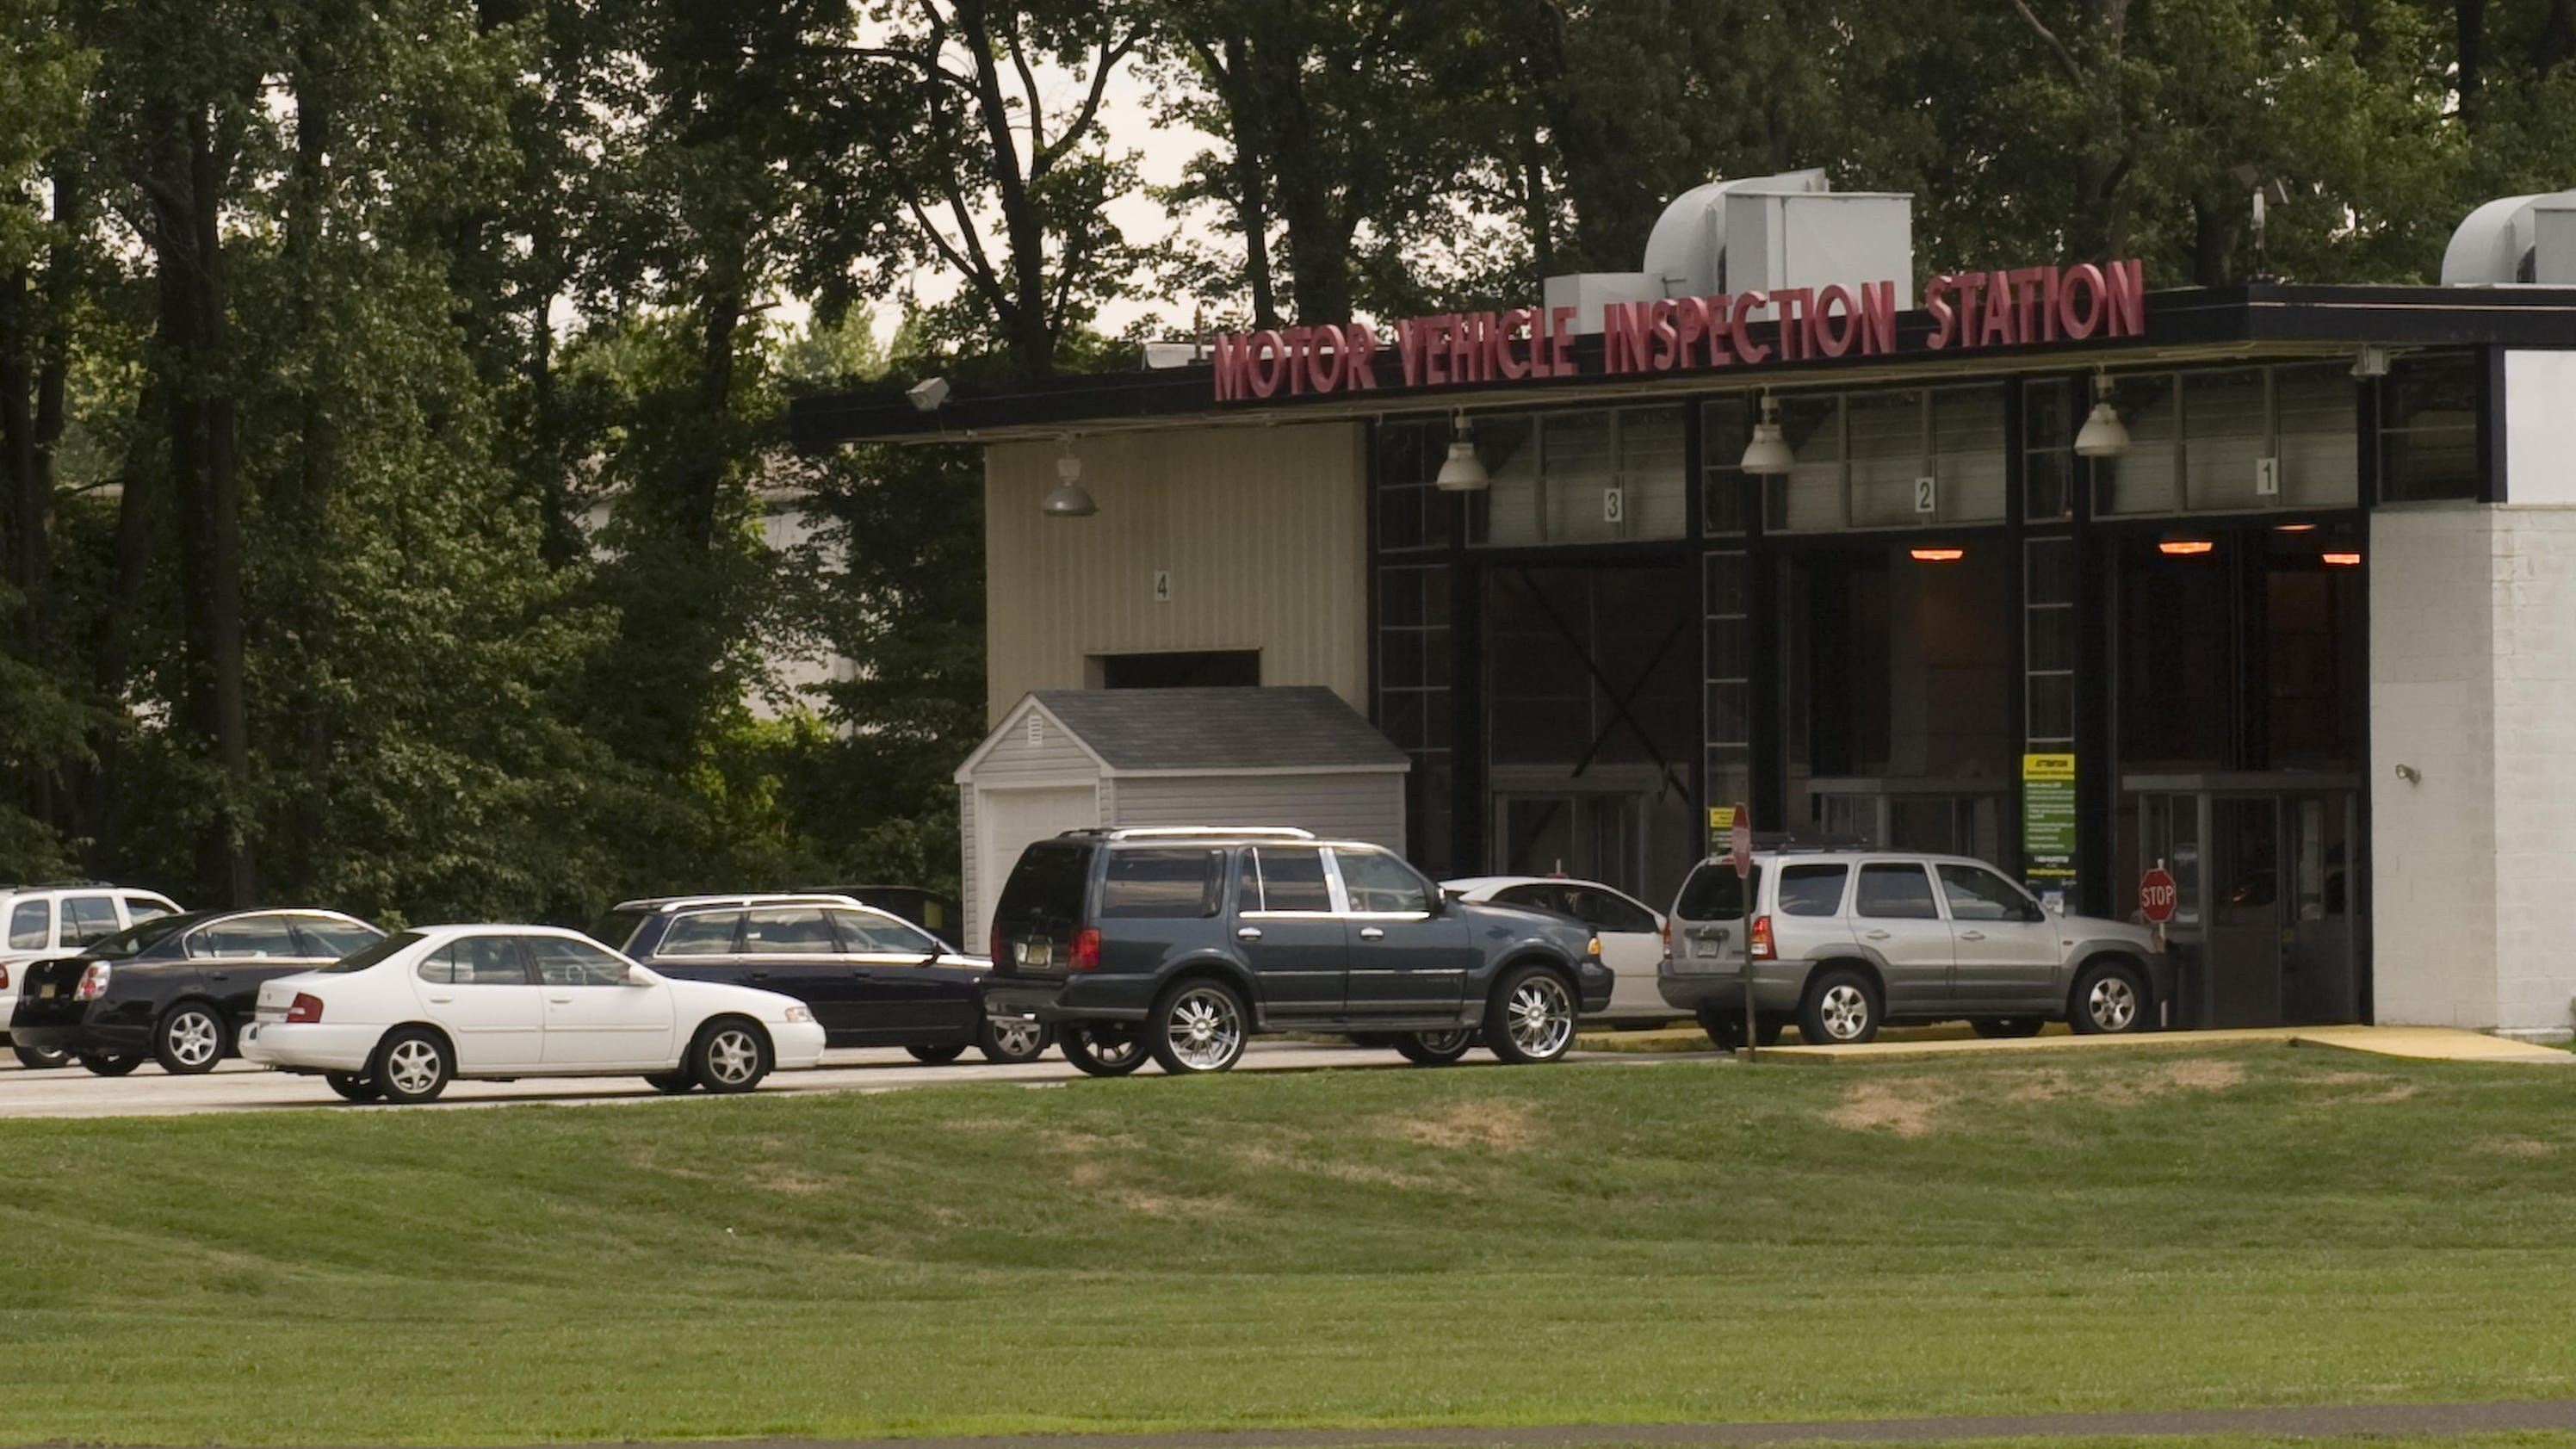 Motor vehicle inspection station cherry hill nj for Motor vehicle inspection nj